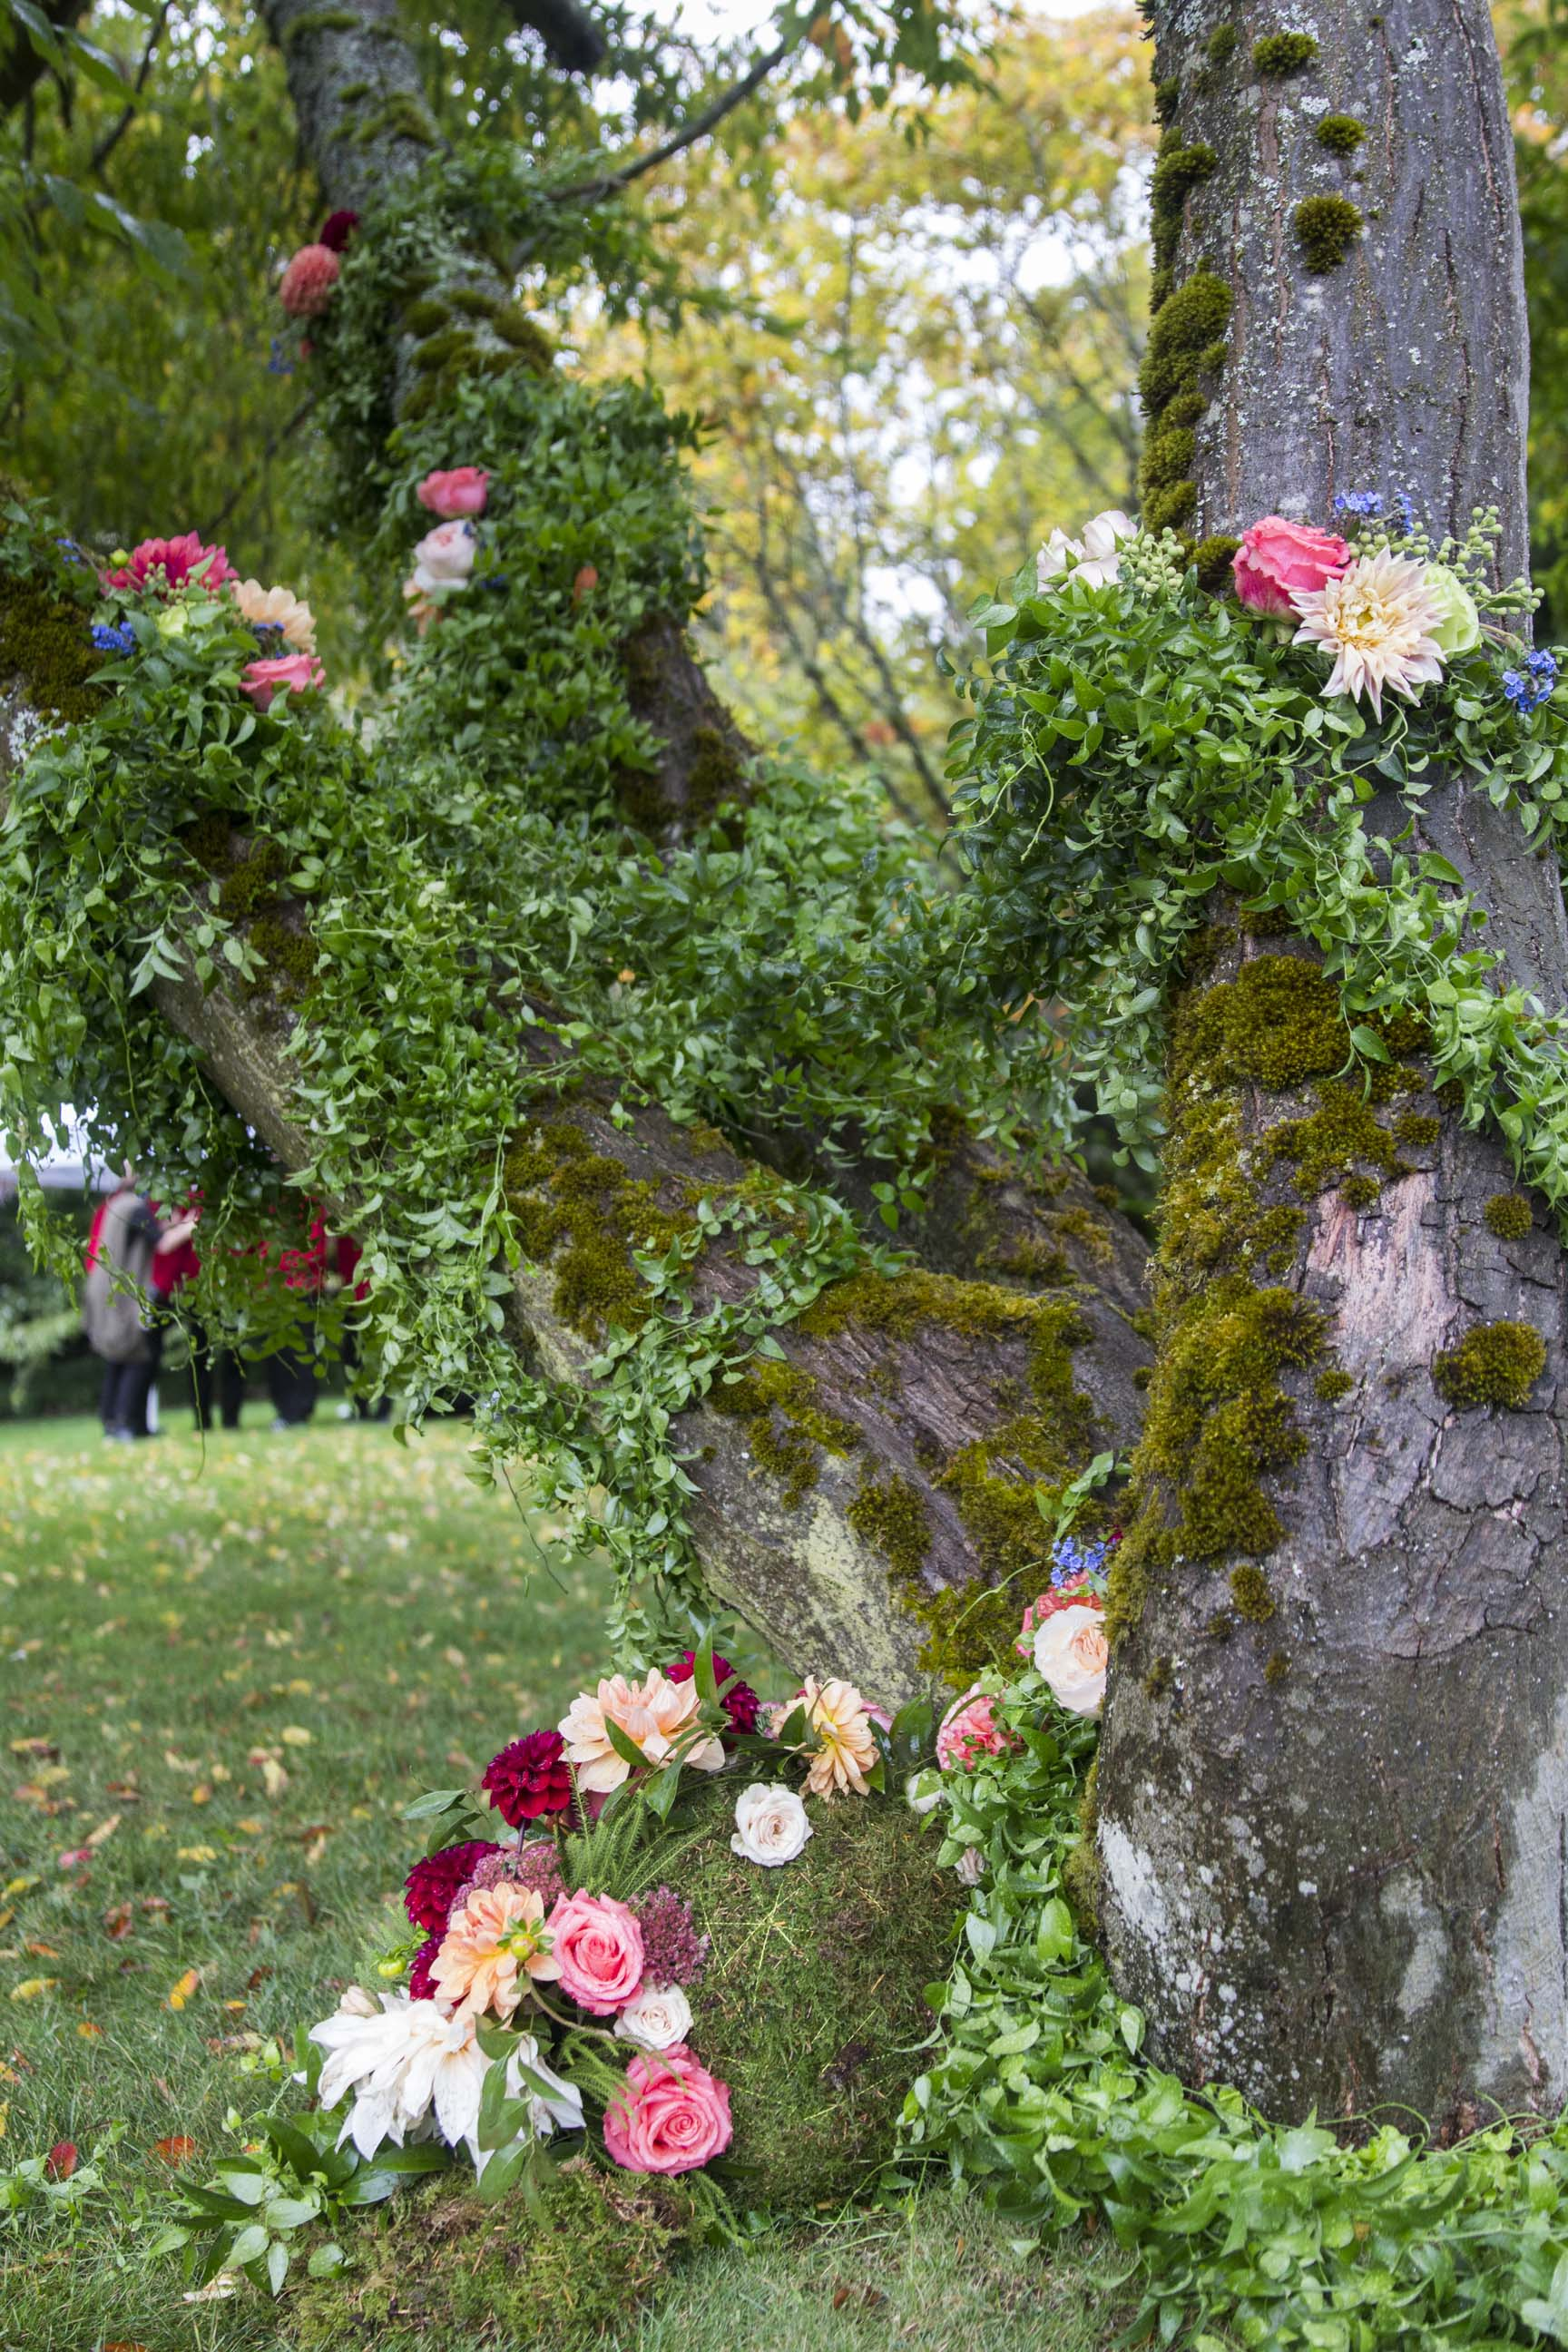 greenery and flowers draping a large tree